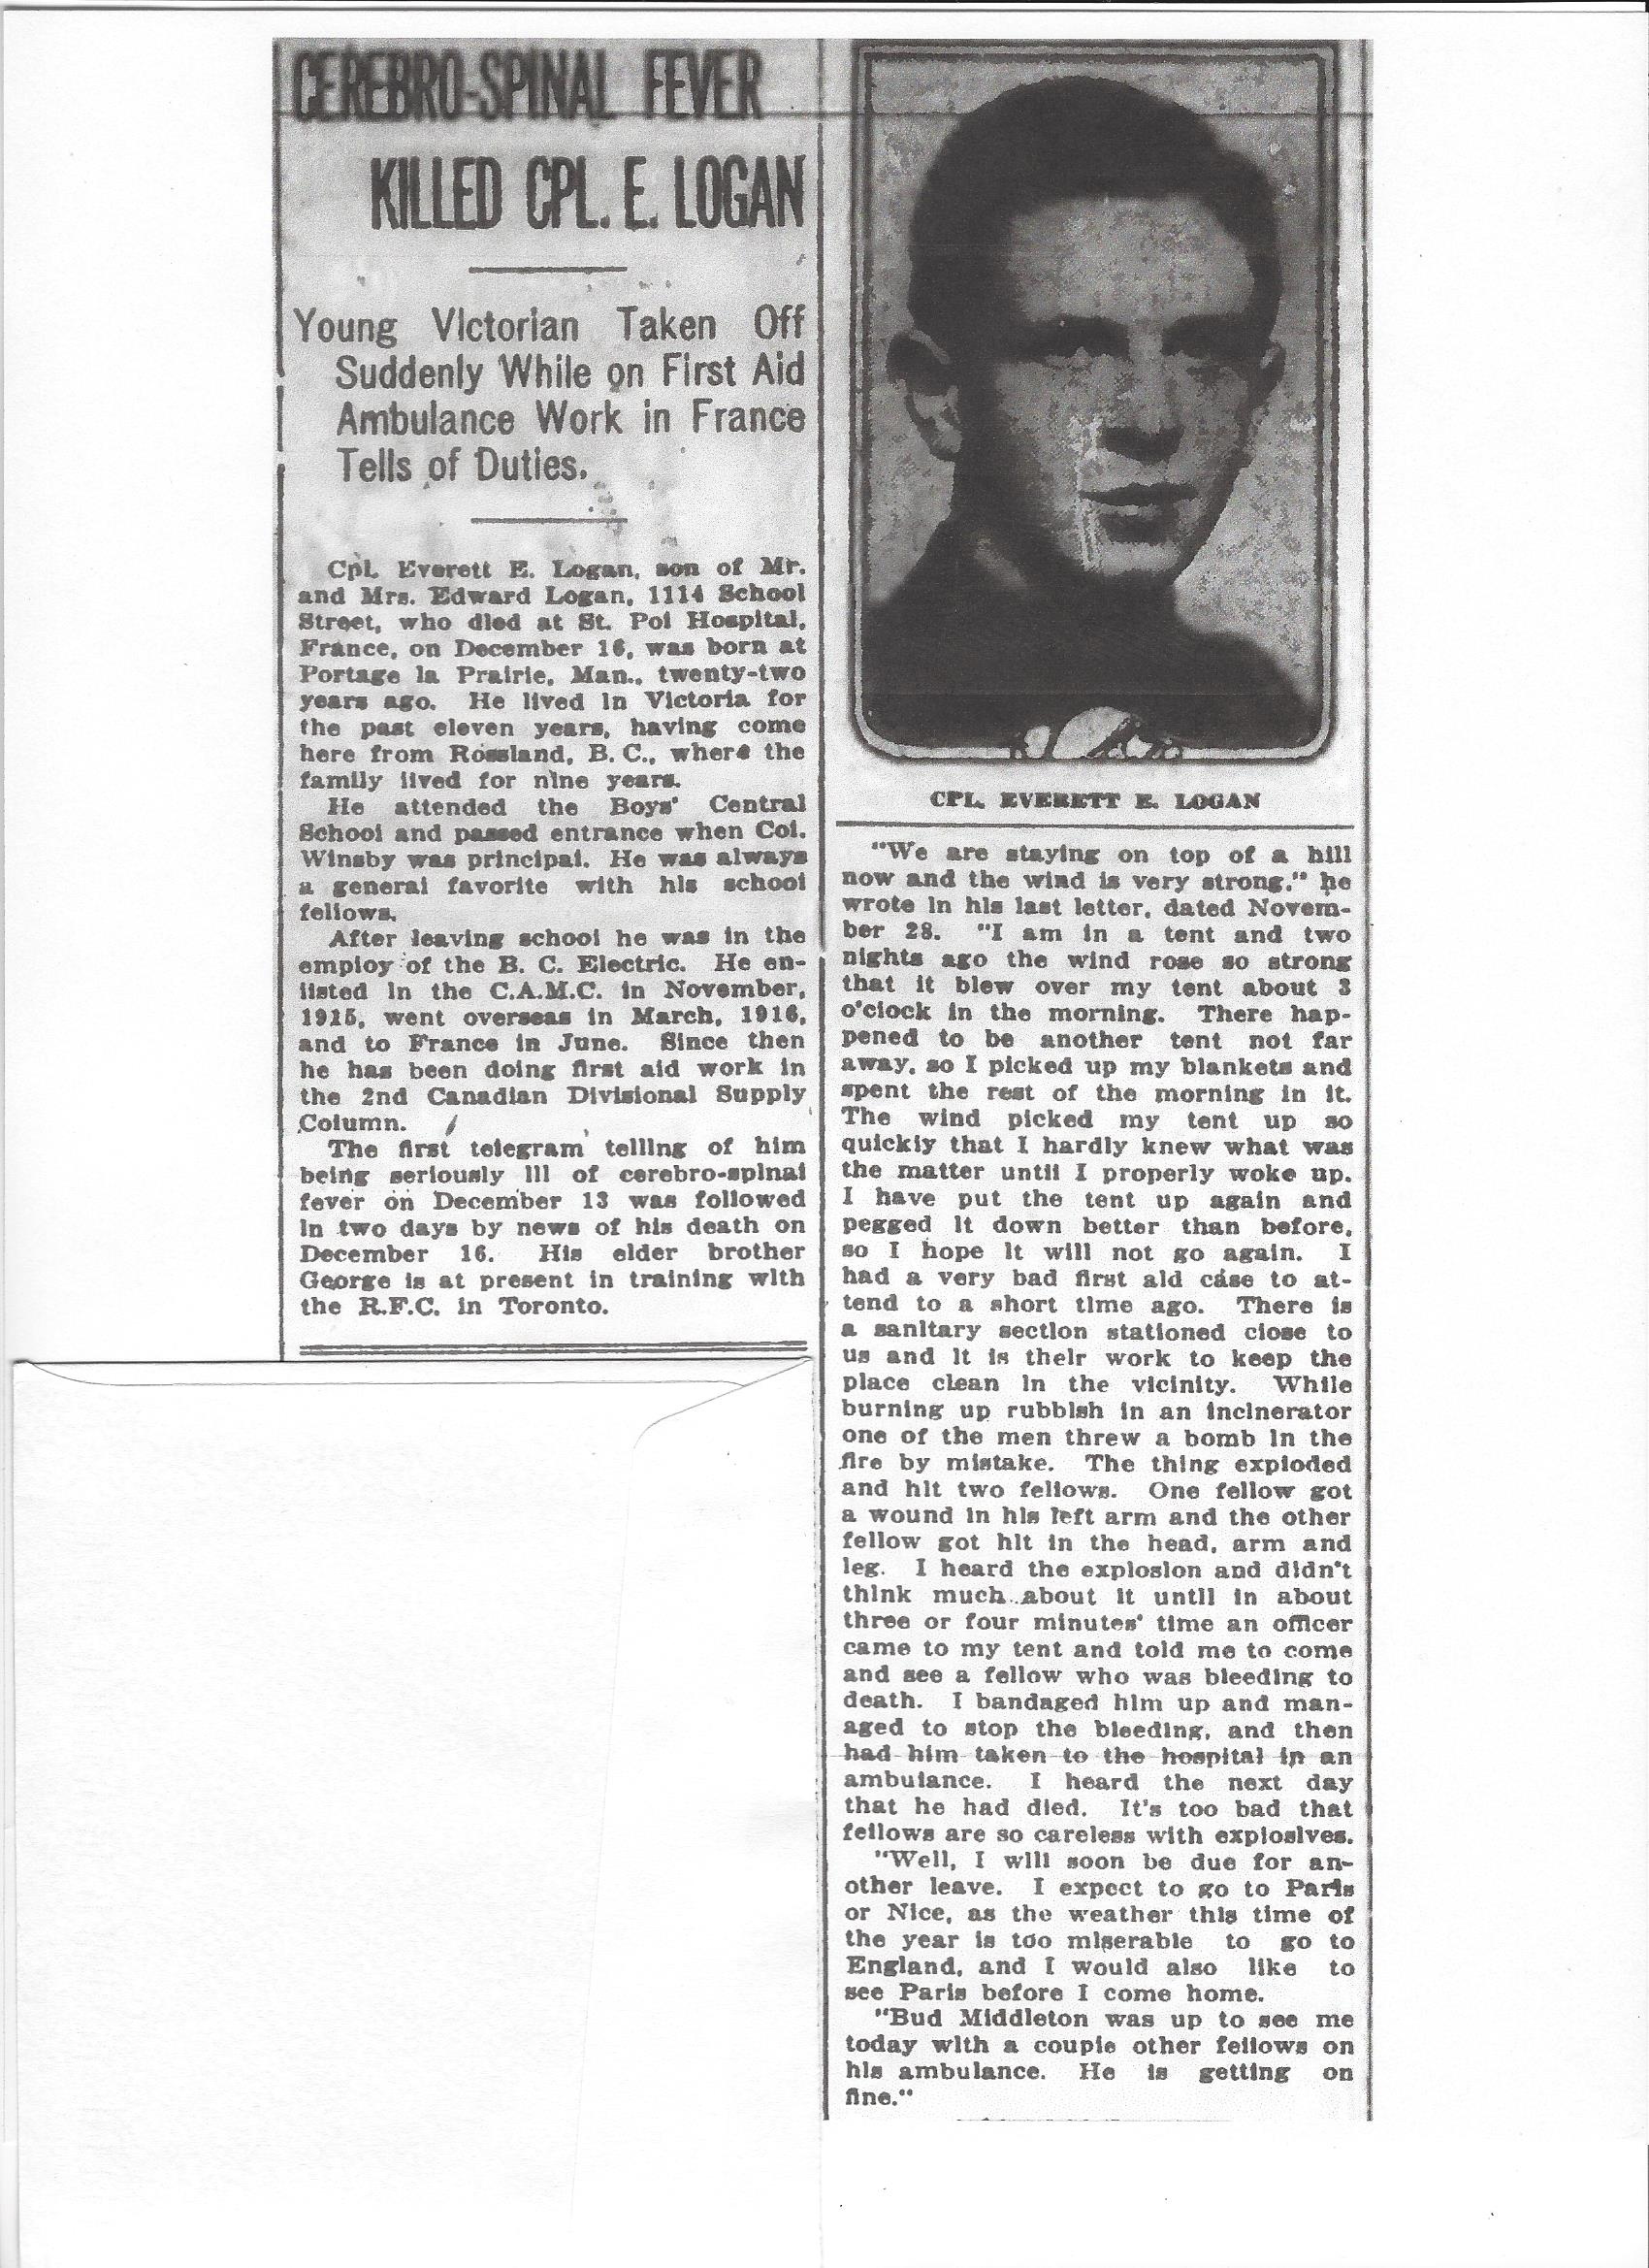 Newspaper clipping– From the Daily Colonist of December 30, 1917. Image taken from web address of http://archive.org/stream/dailycolonist59y331uvic#page/n0/mode/1up